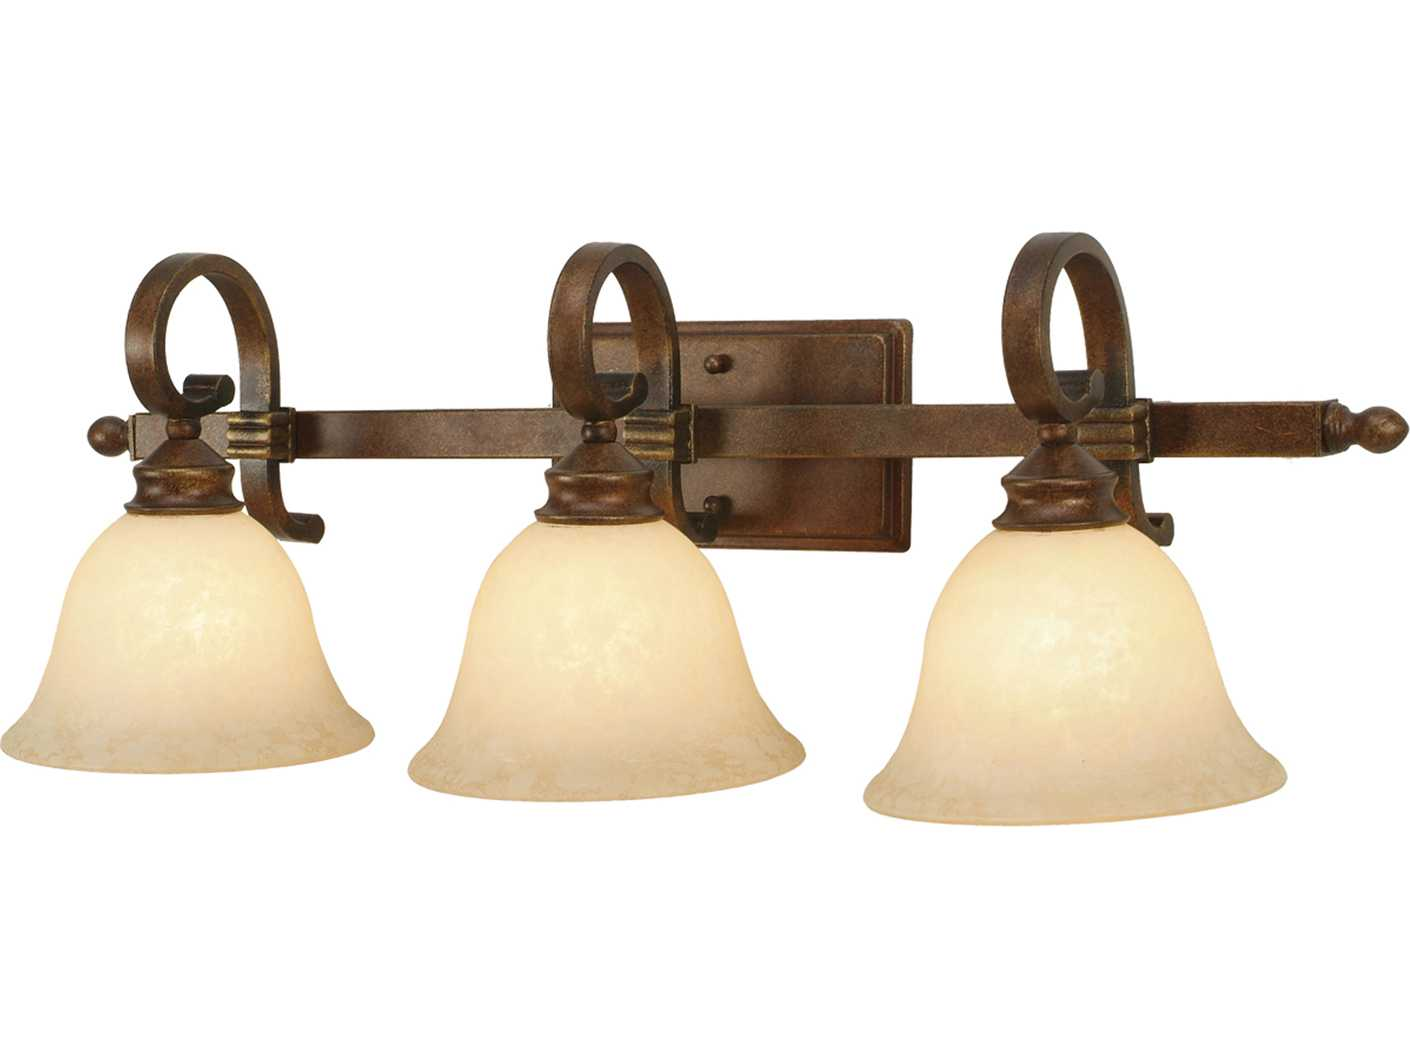 Golden Lighting Rockefeller Champagne Bronze Three-Light Vanity Light with Tea Stone Glass ...